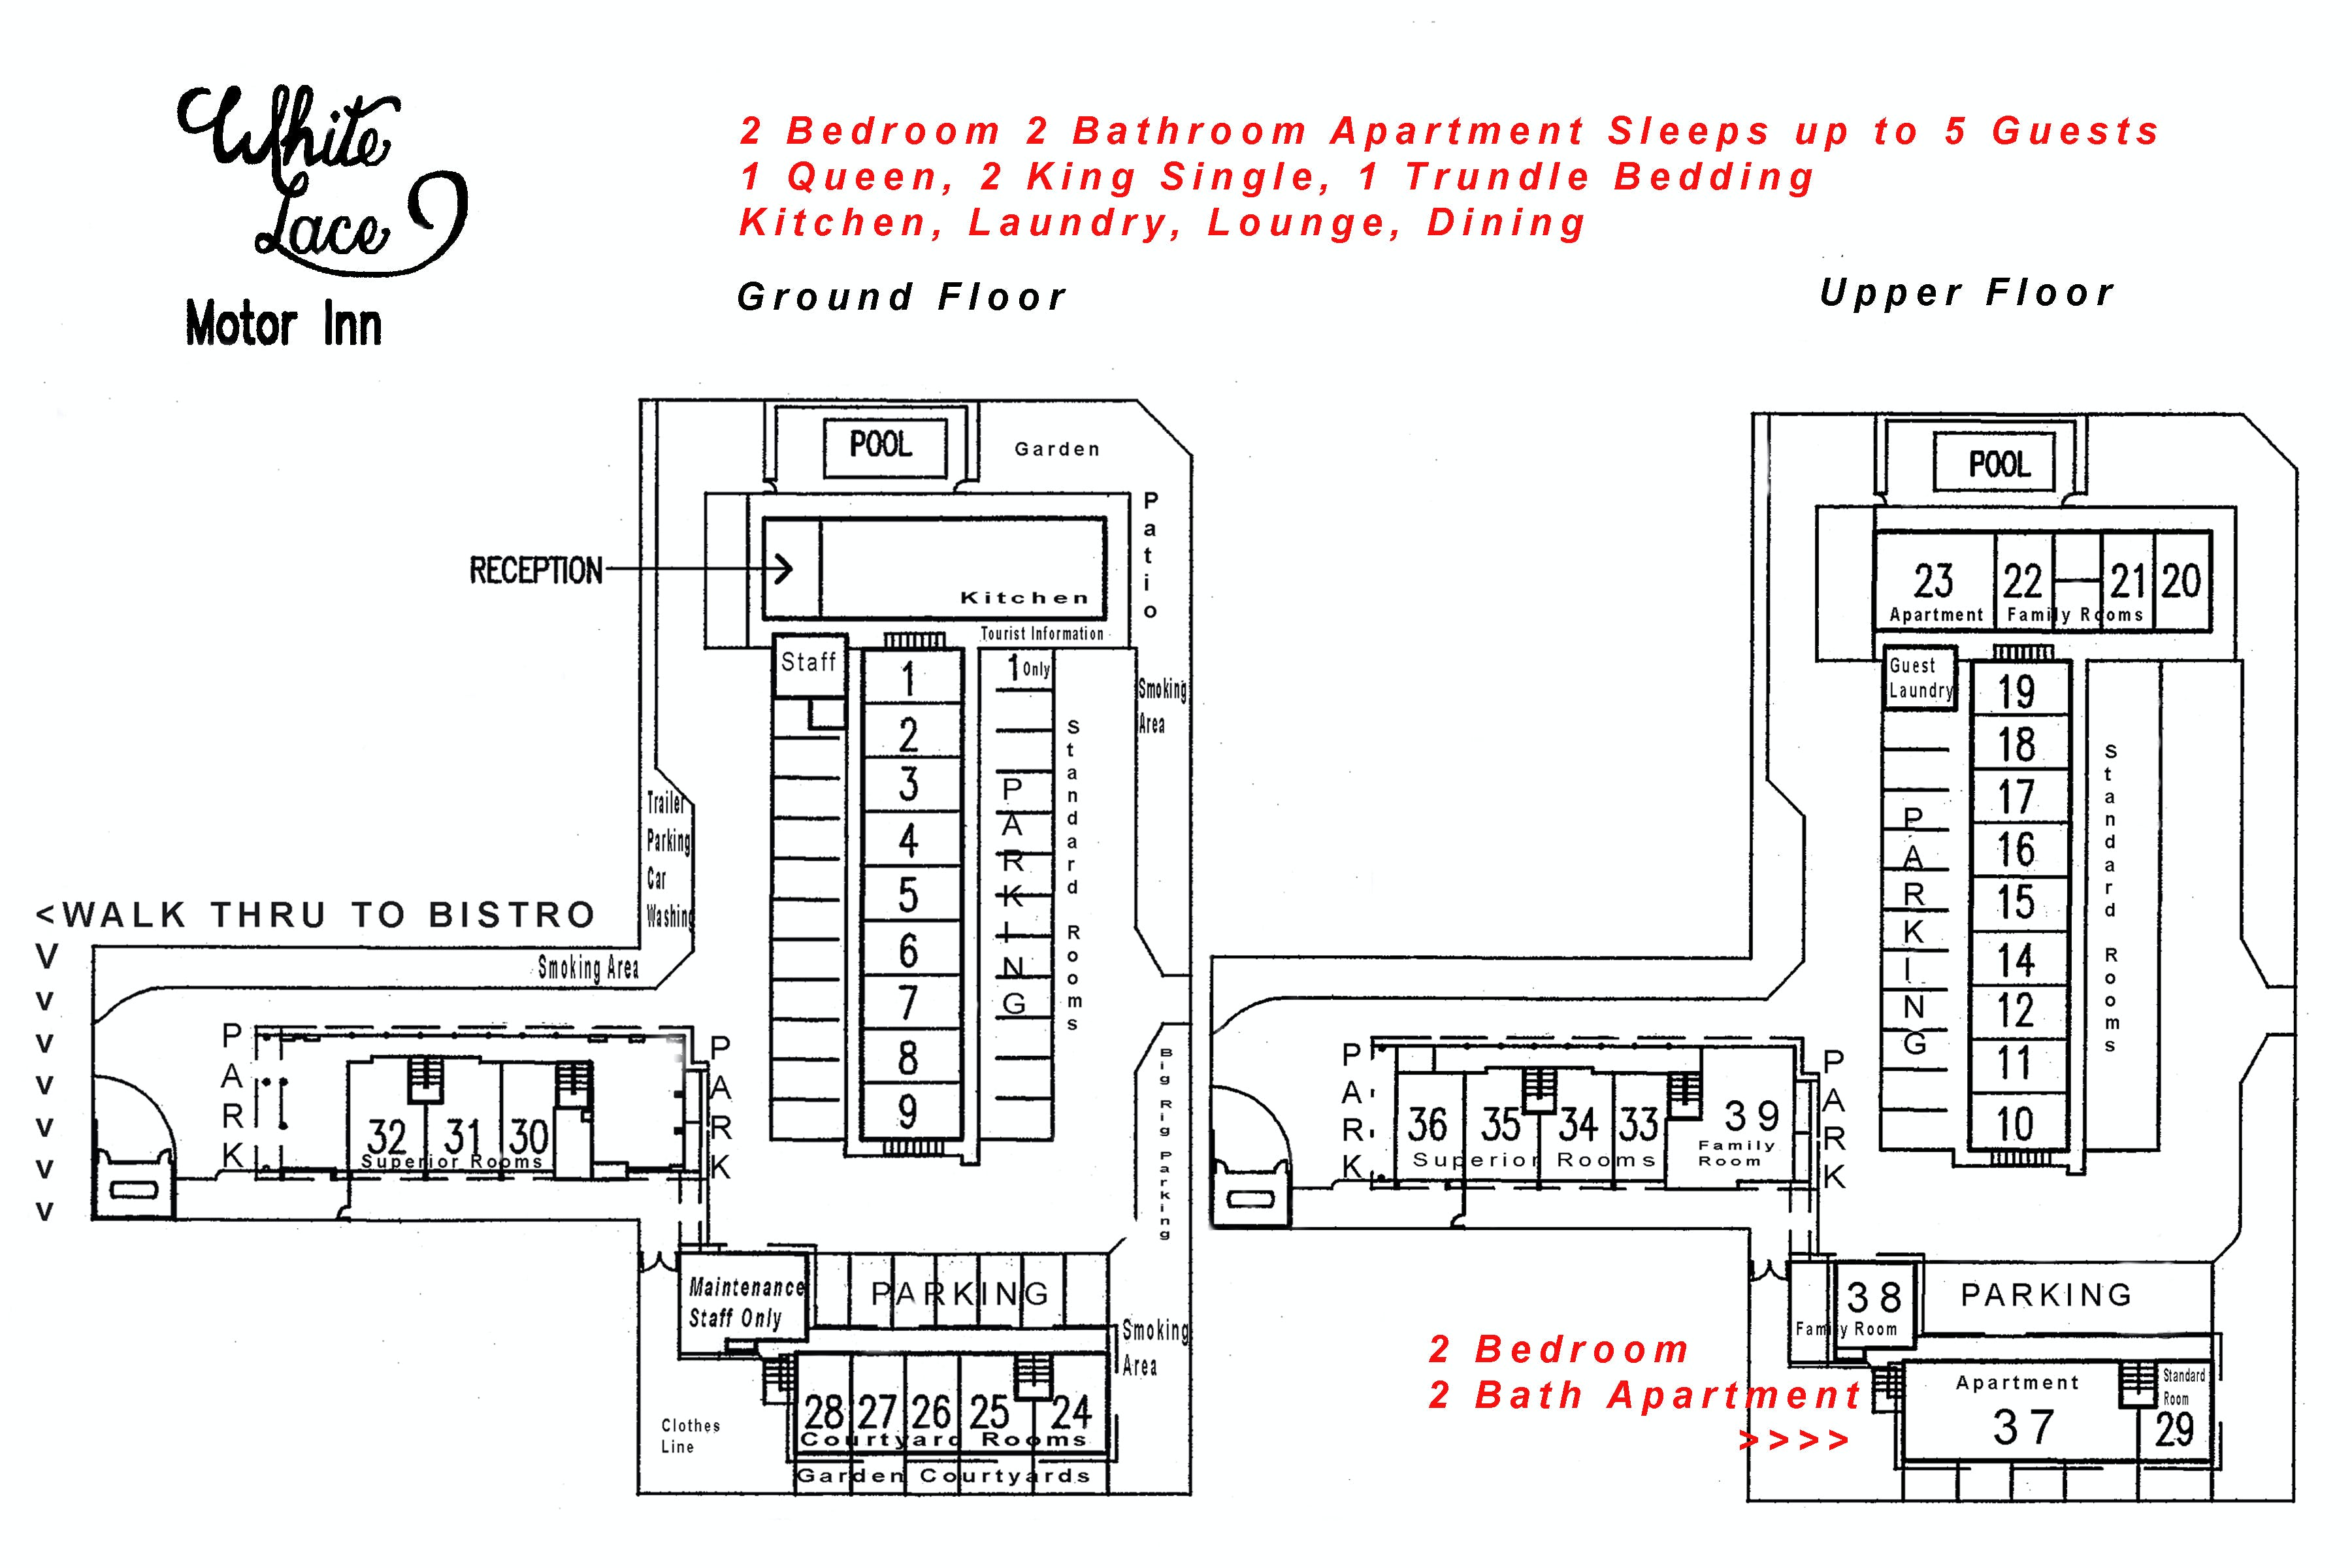 Two Bedroom Two Bathroom Apartment site plan White Lace Motor Inn Mackay, Self contained accommodation Mackay